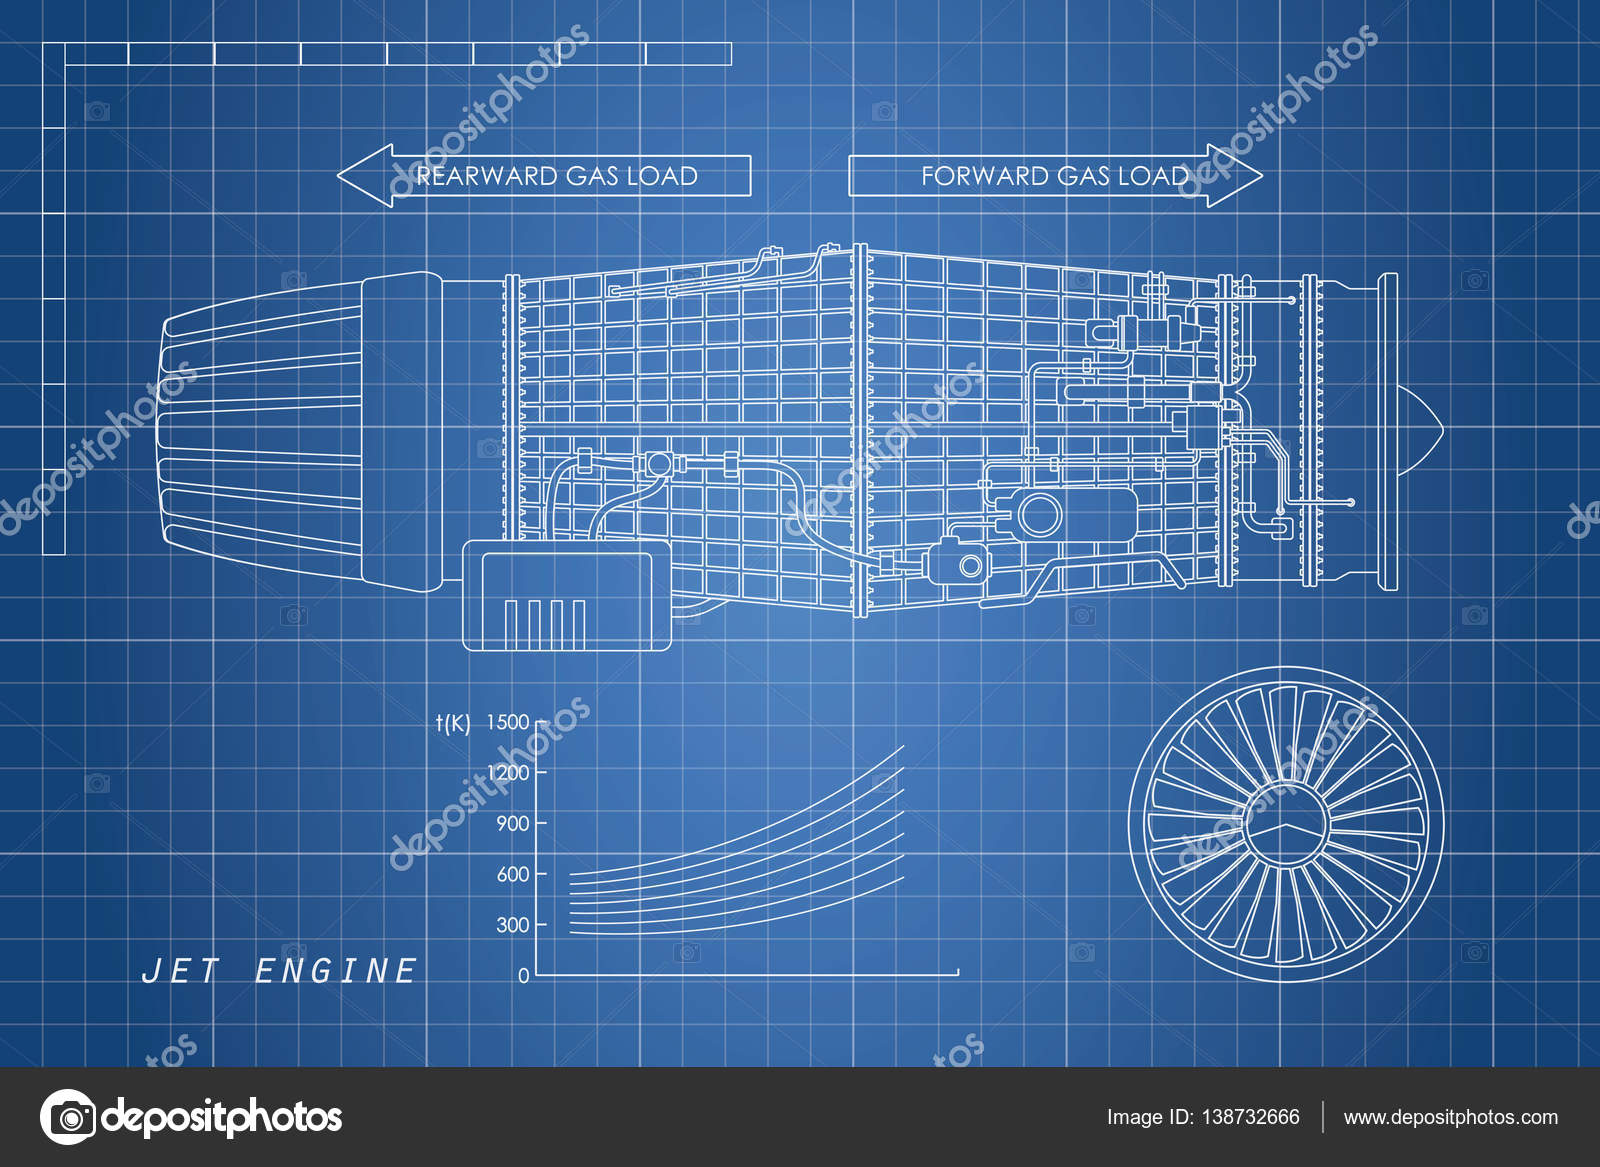 Engine Aircraft Repair Stock Vectors Royalty Free Jet Schematic In A Outline Style Industrial Vector Blueprint Part